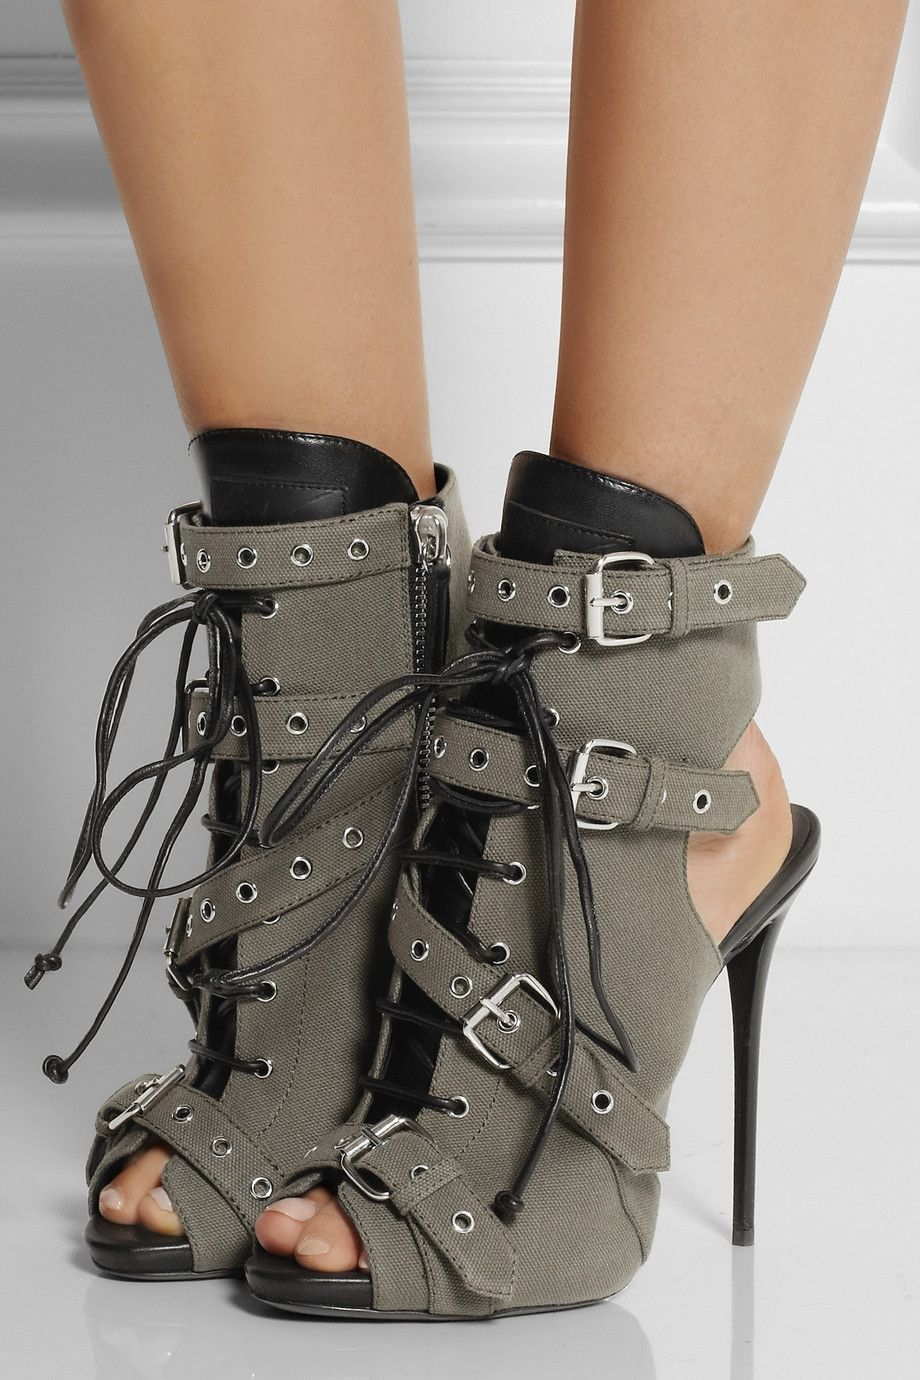 edgy giuseppe zanotti army-green cutout boots with laces, buckles and black  details.